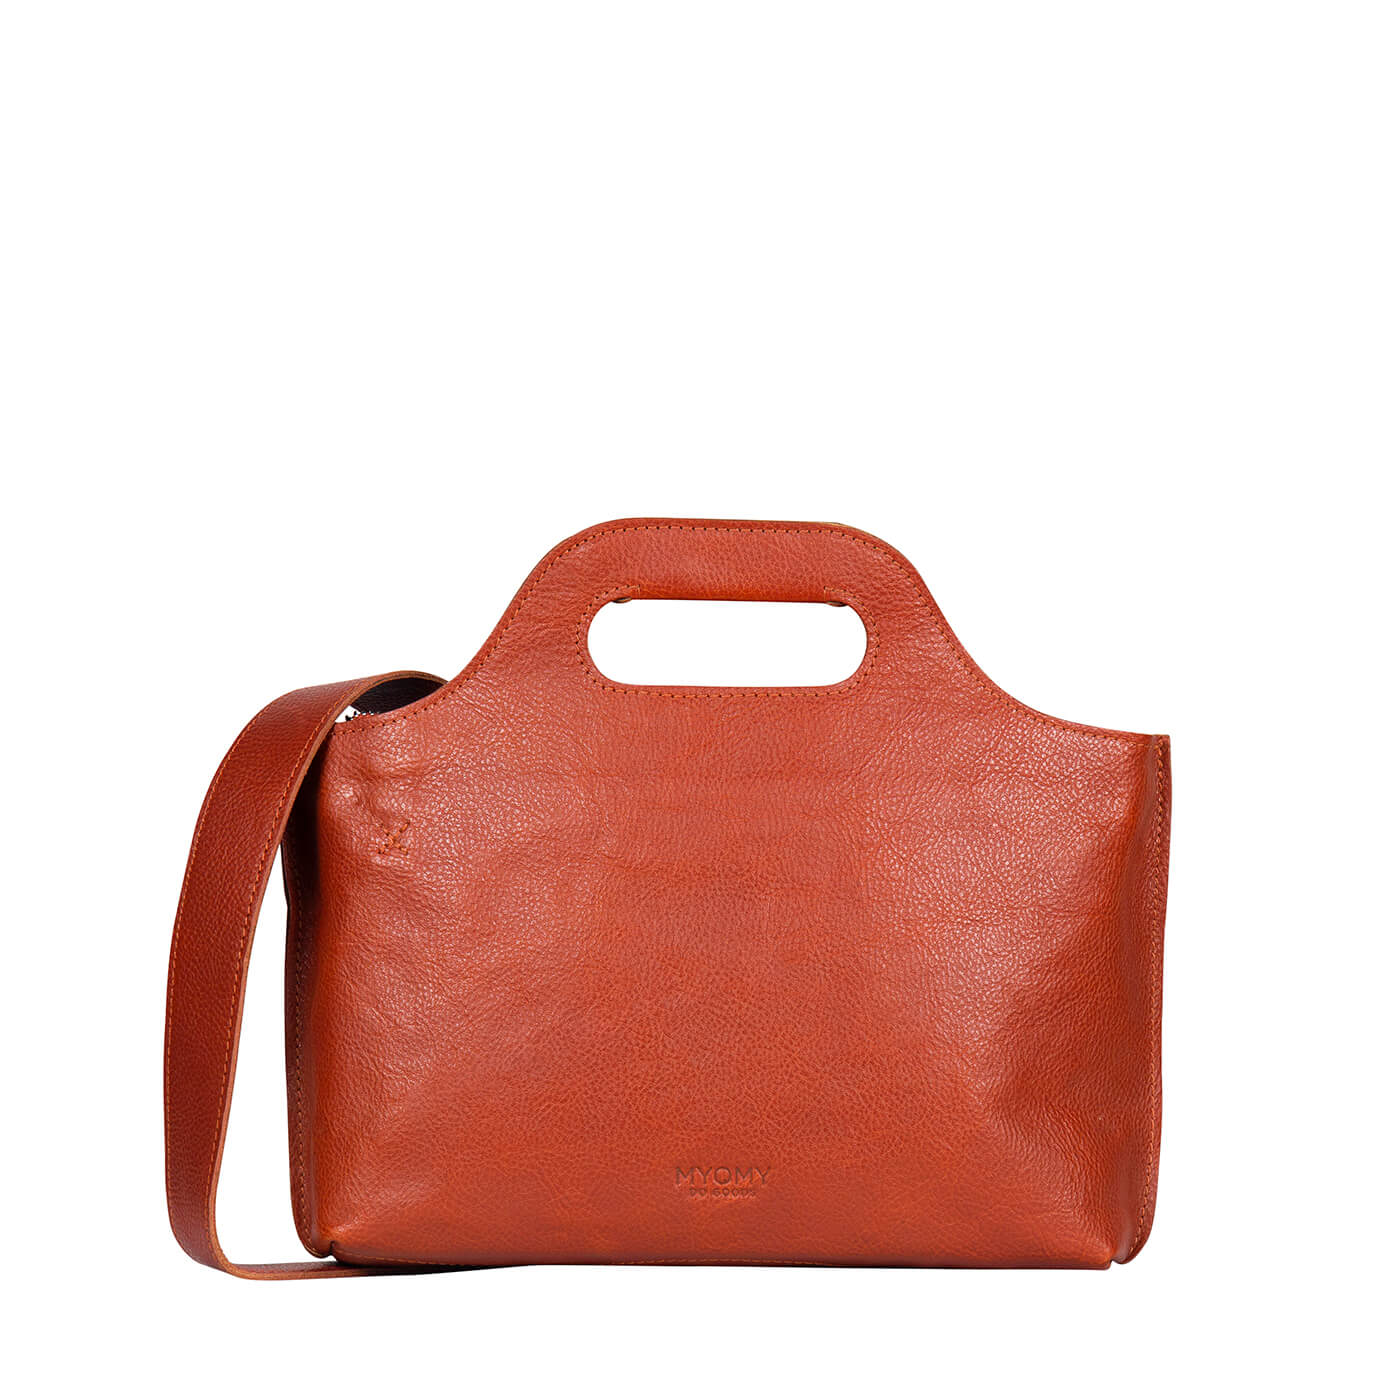 [PRE-ORDER] MY CARRY BAG Mini – seville cognac